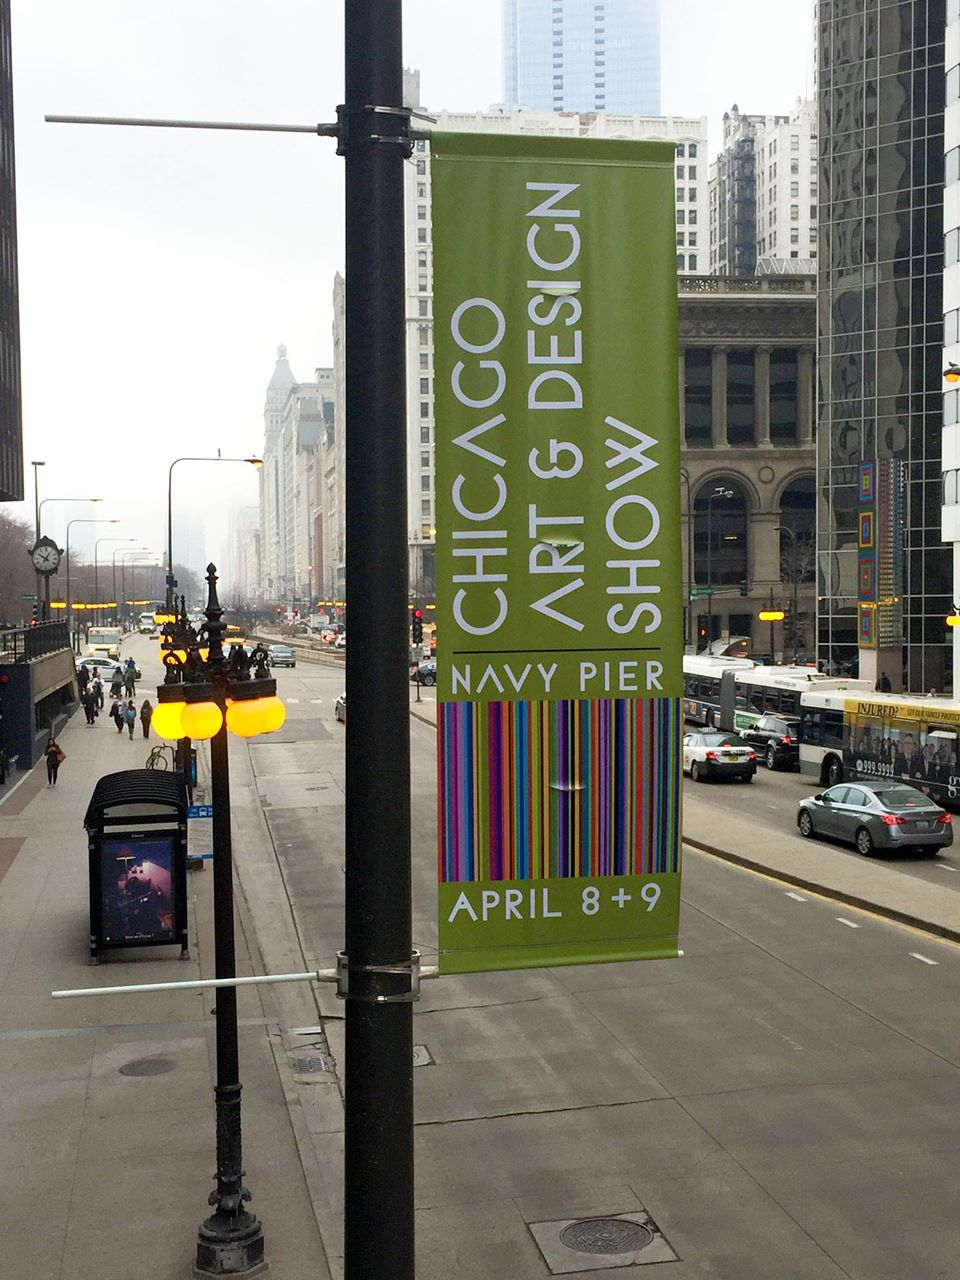 Navy_pier_banner_michigan_Ave.jpg